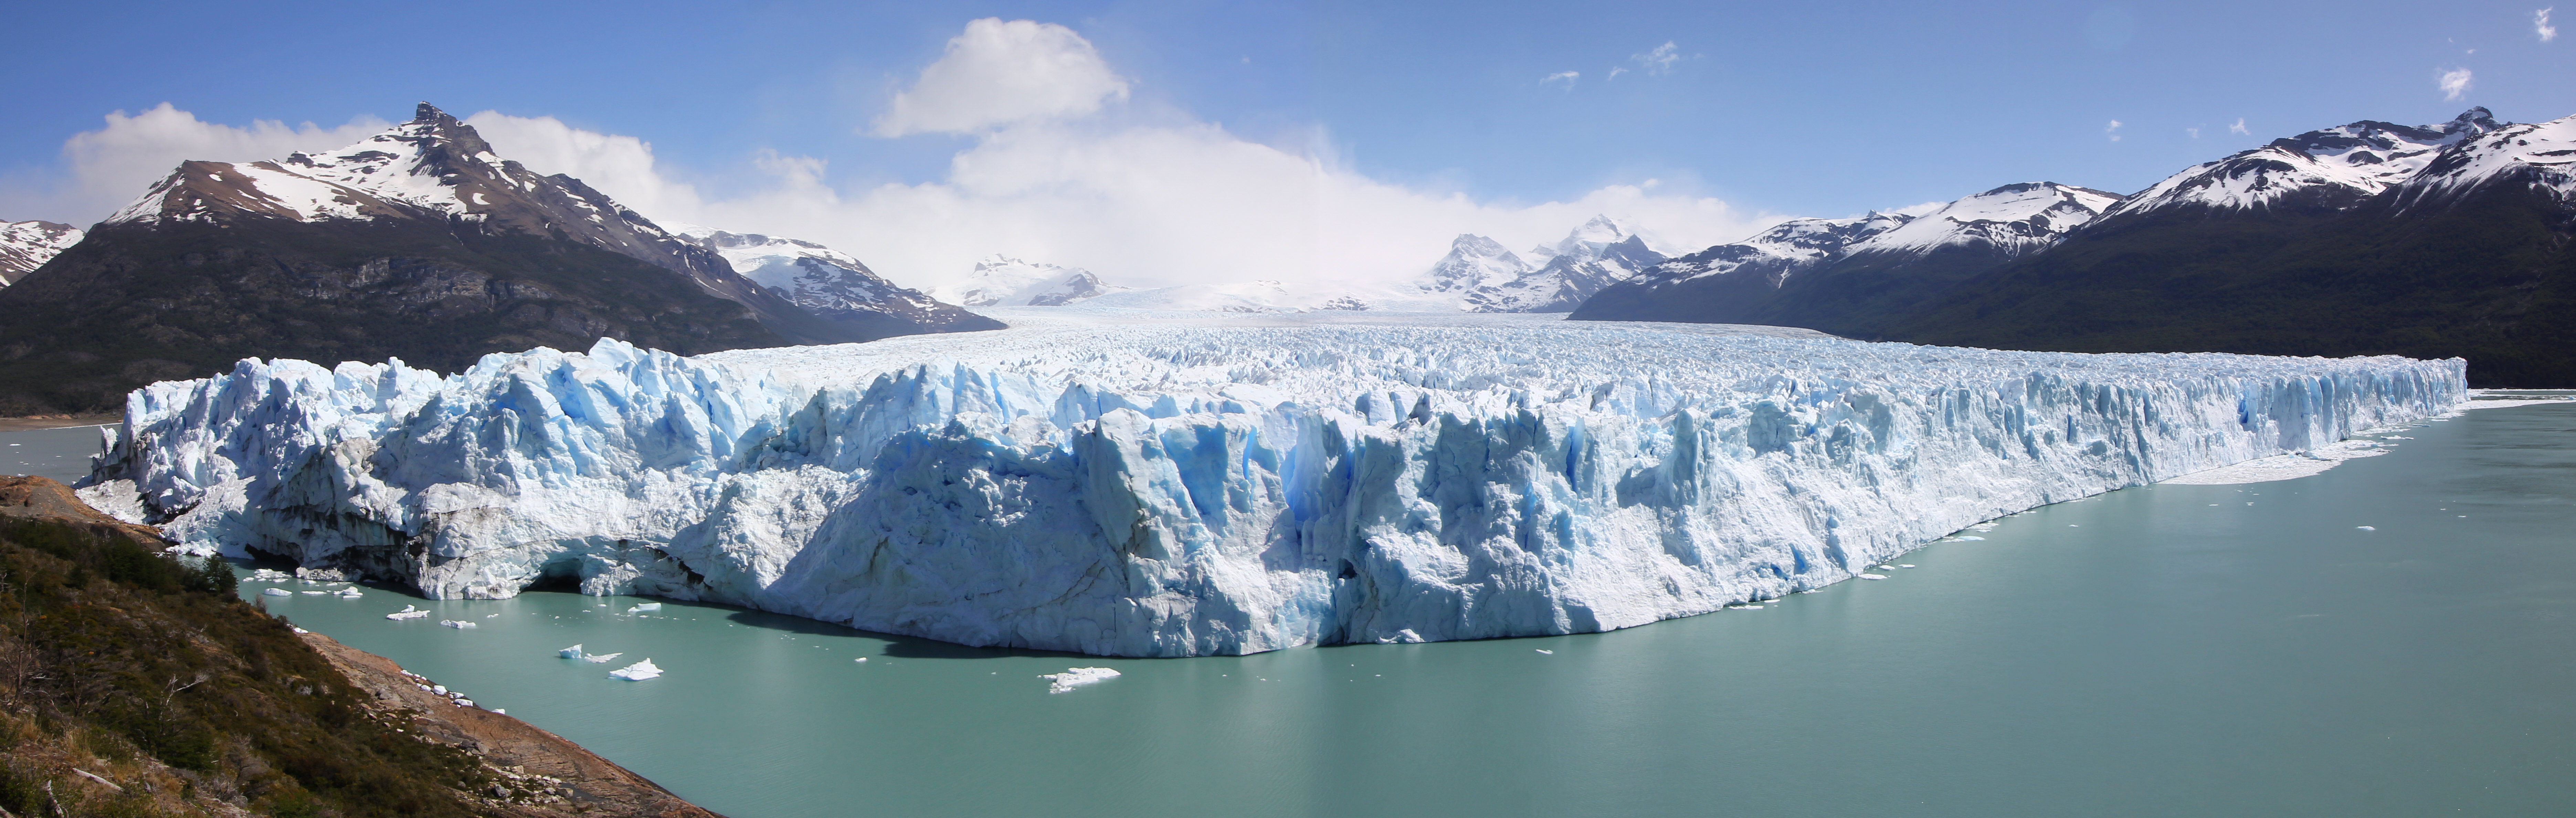 A panorama of the 5 kilometre-wide, 60 metre-high front face of the Perito Moreno Glacier in Lago Argentino, Parque Nacional Los Glaciares, Patagonia, Argentina. November 2, 2015.